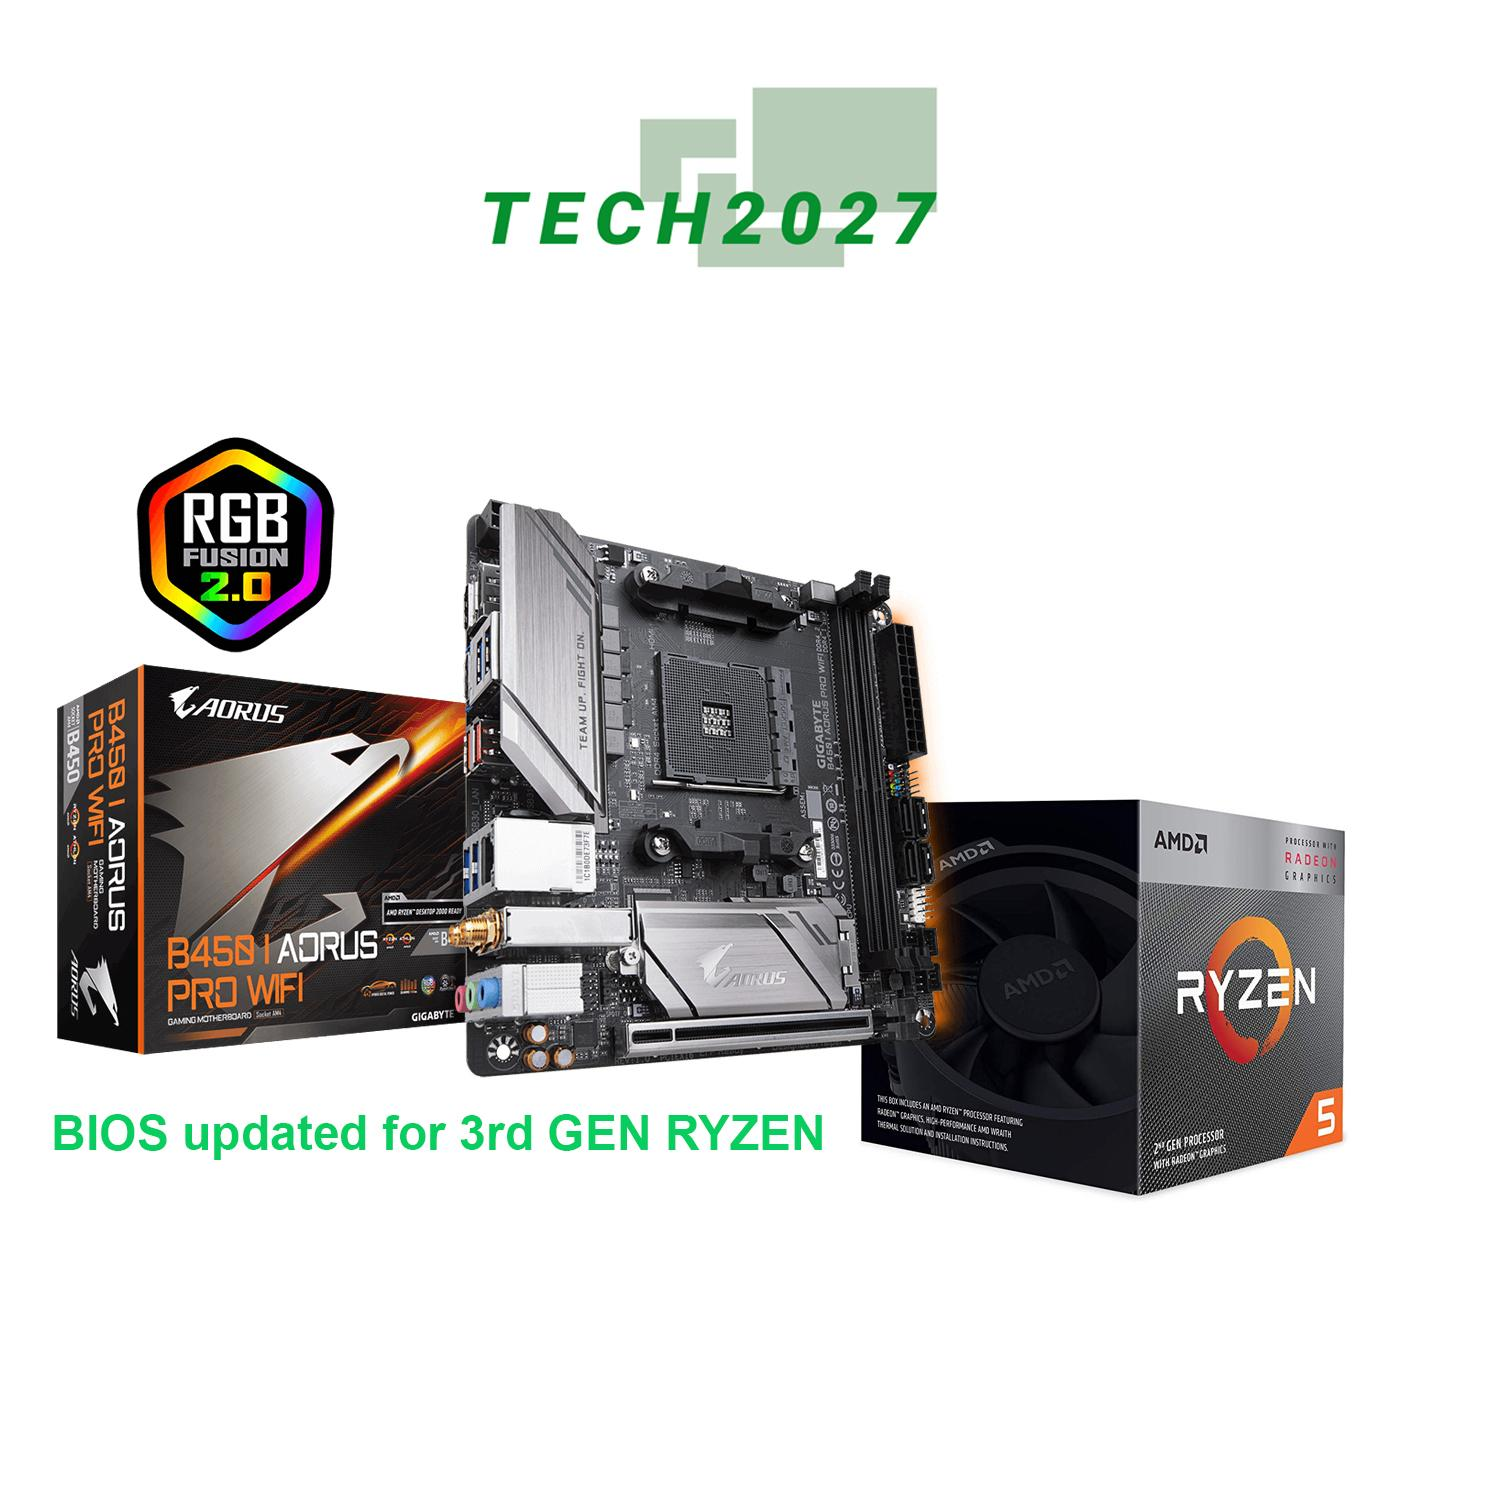 AMD RYZEN 5 3400G 4-Core 3 7 GHz bundle with GIGABYTE B450 I AORUS PRO WIFI  motherboard Mini-ITX